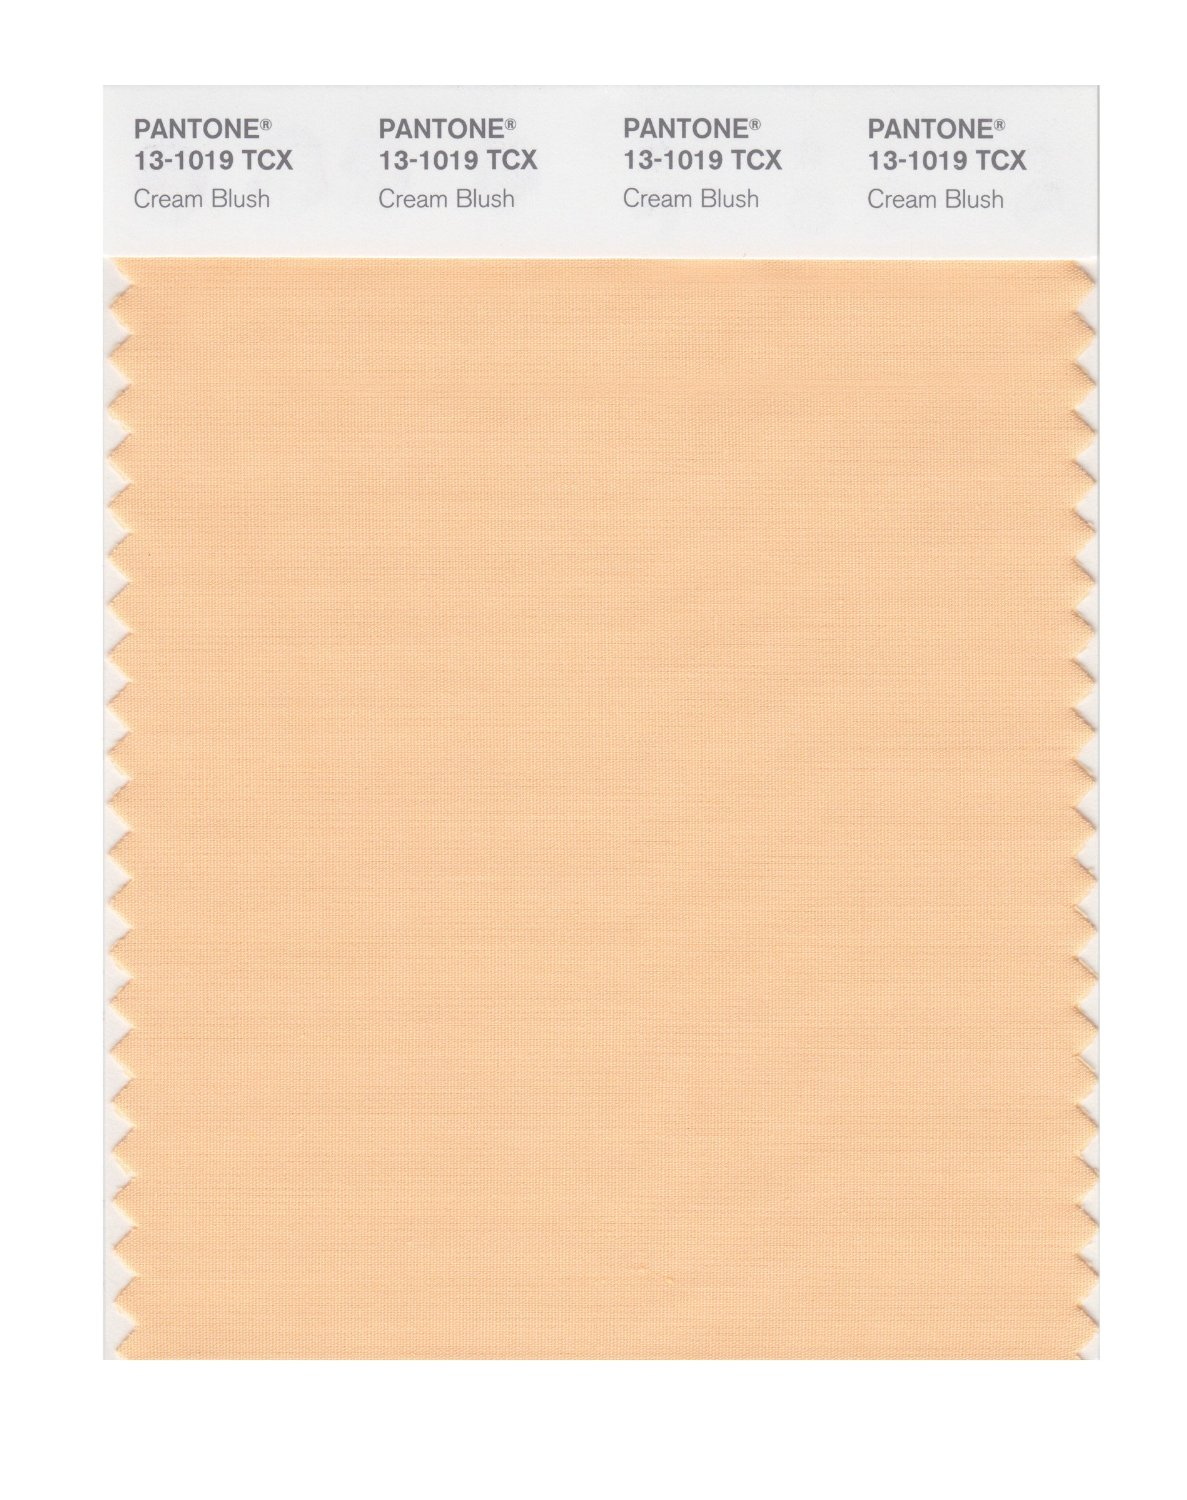 Pantone Smart Swatch 13-1019 Cream Blush